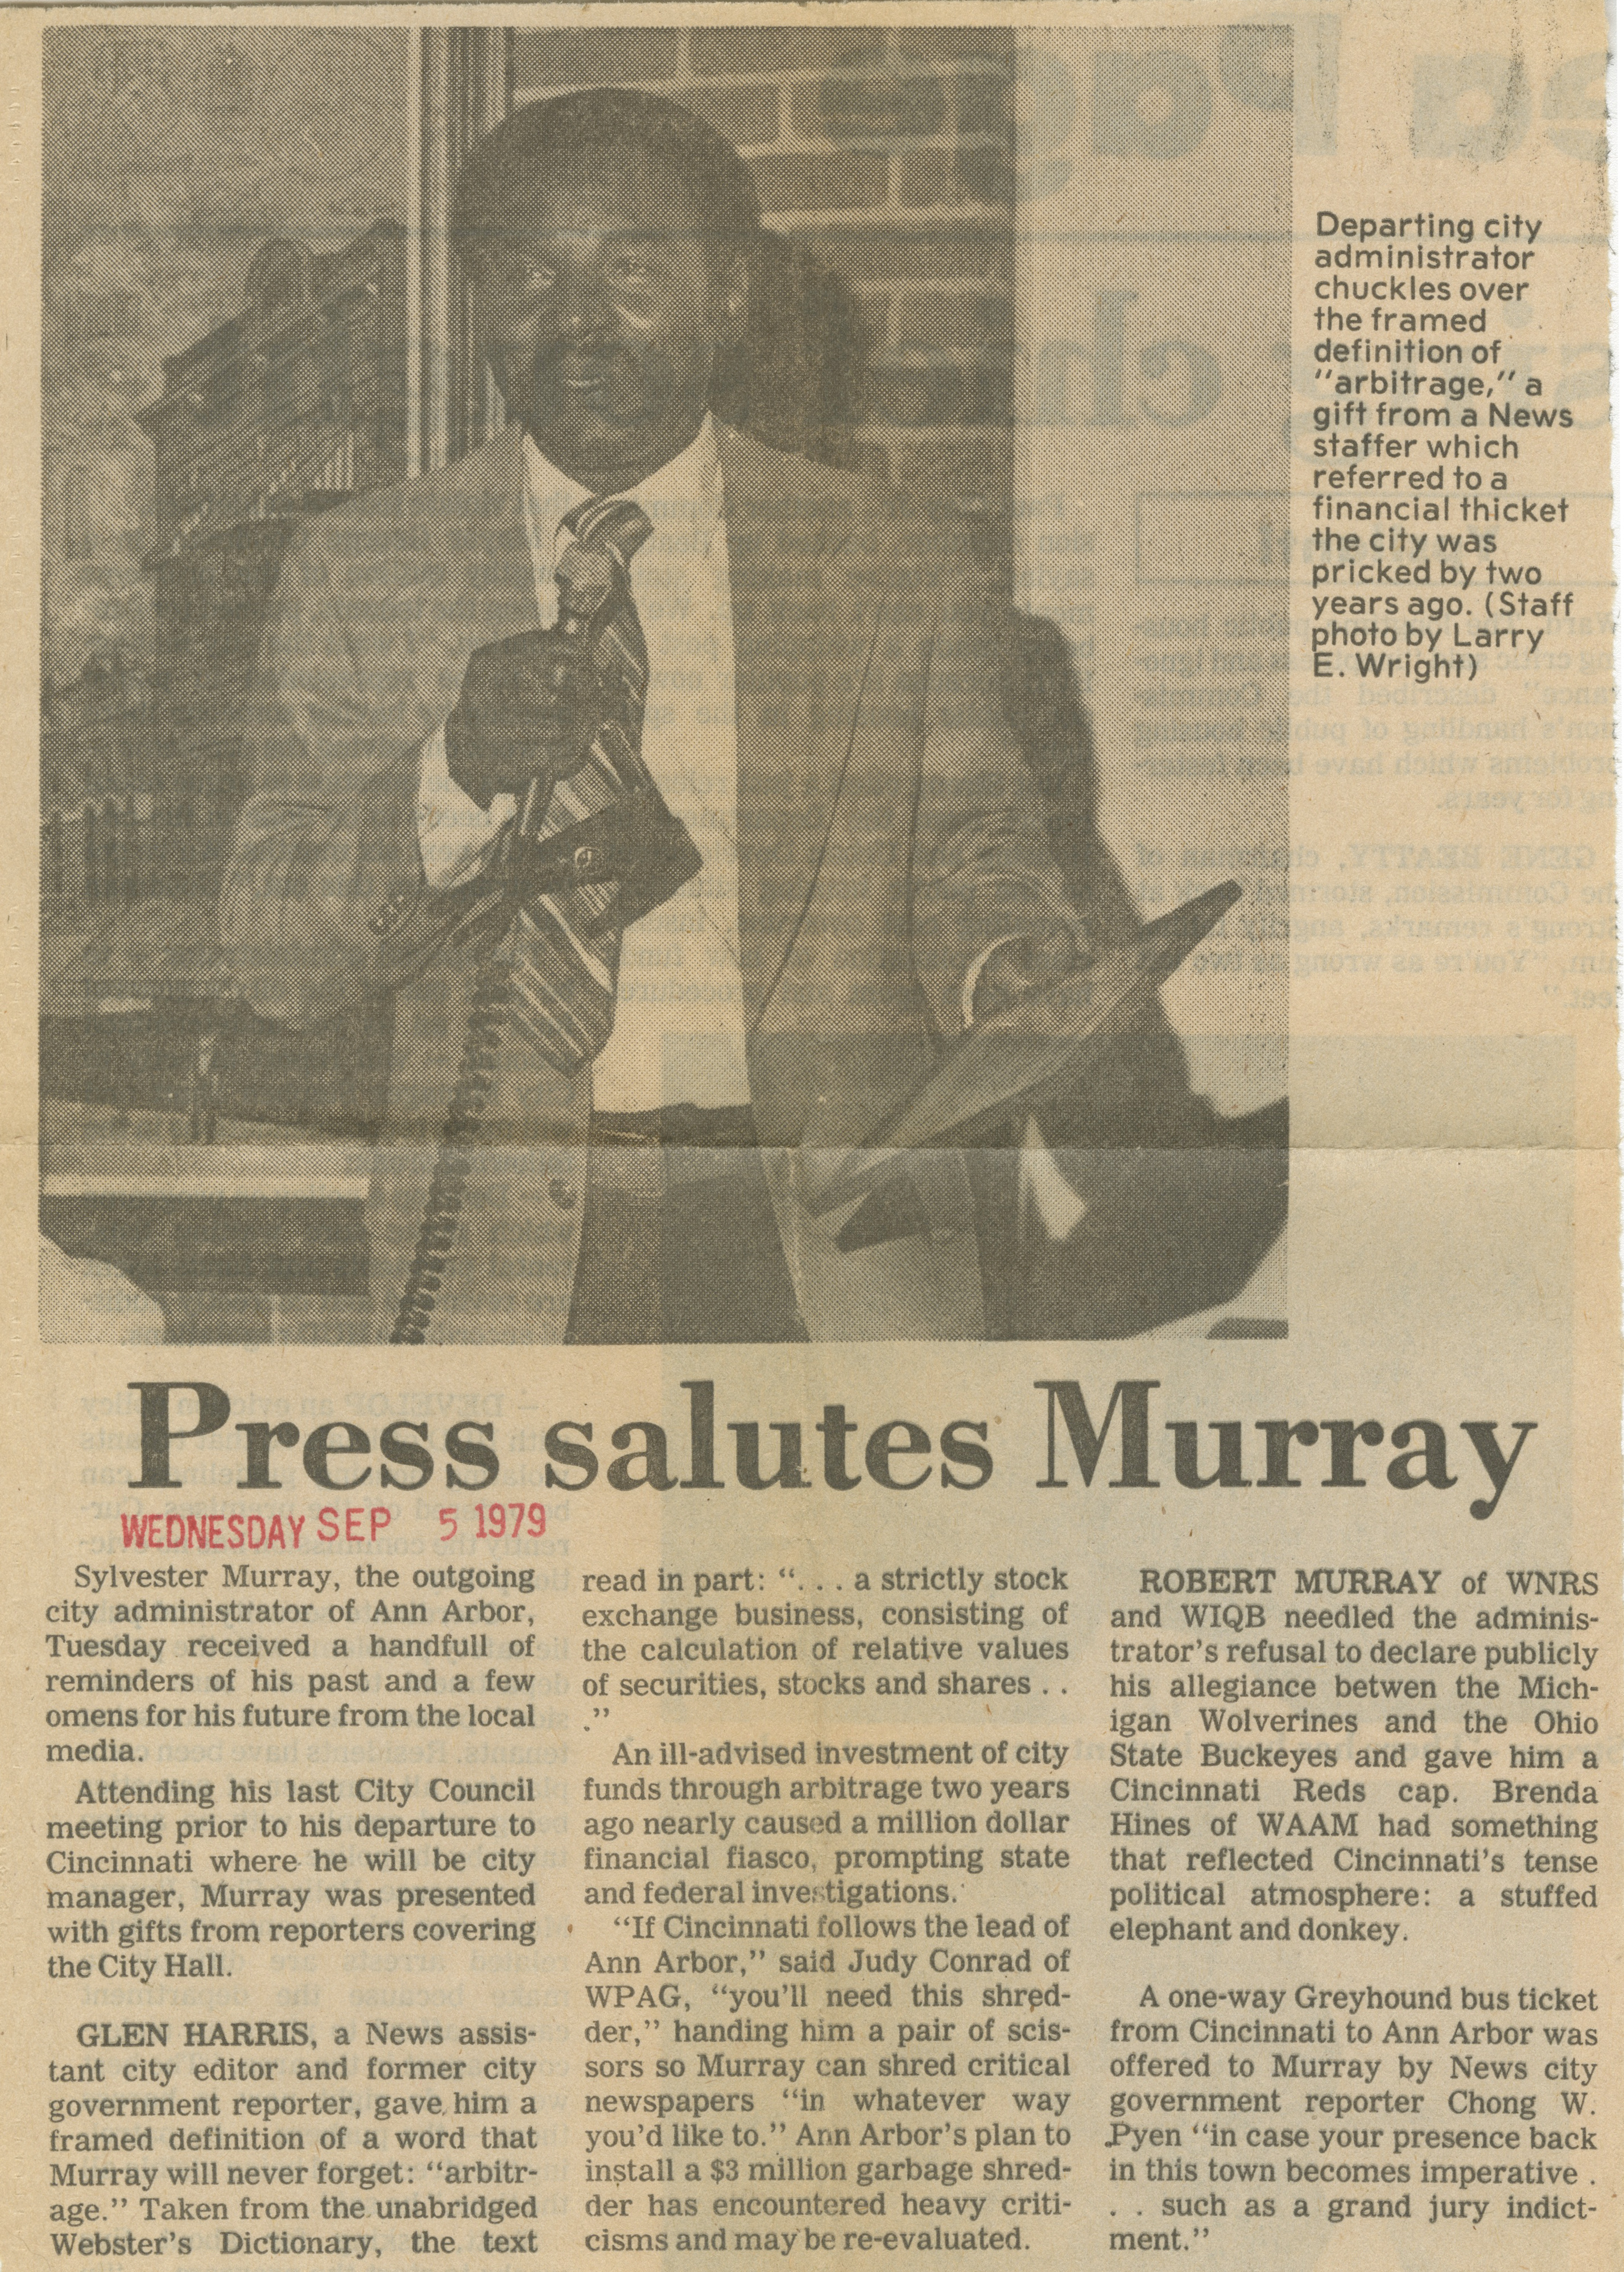 Press Salutes Murray image